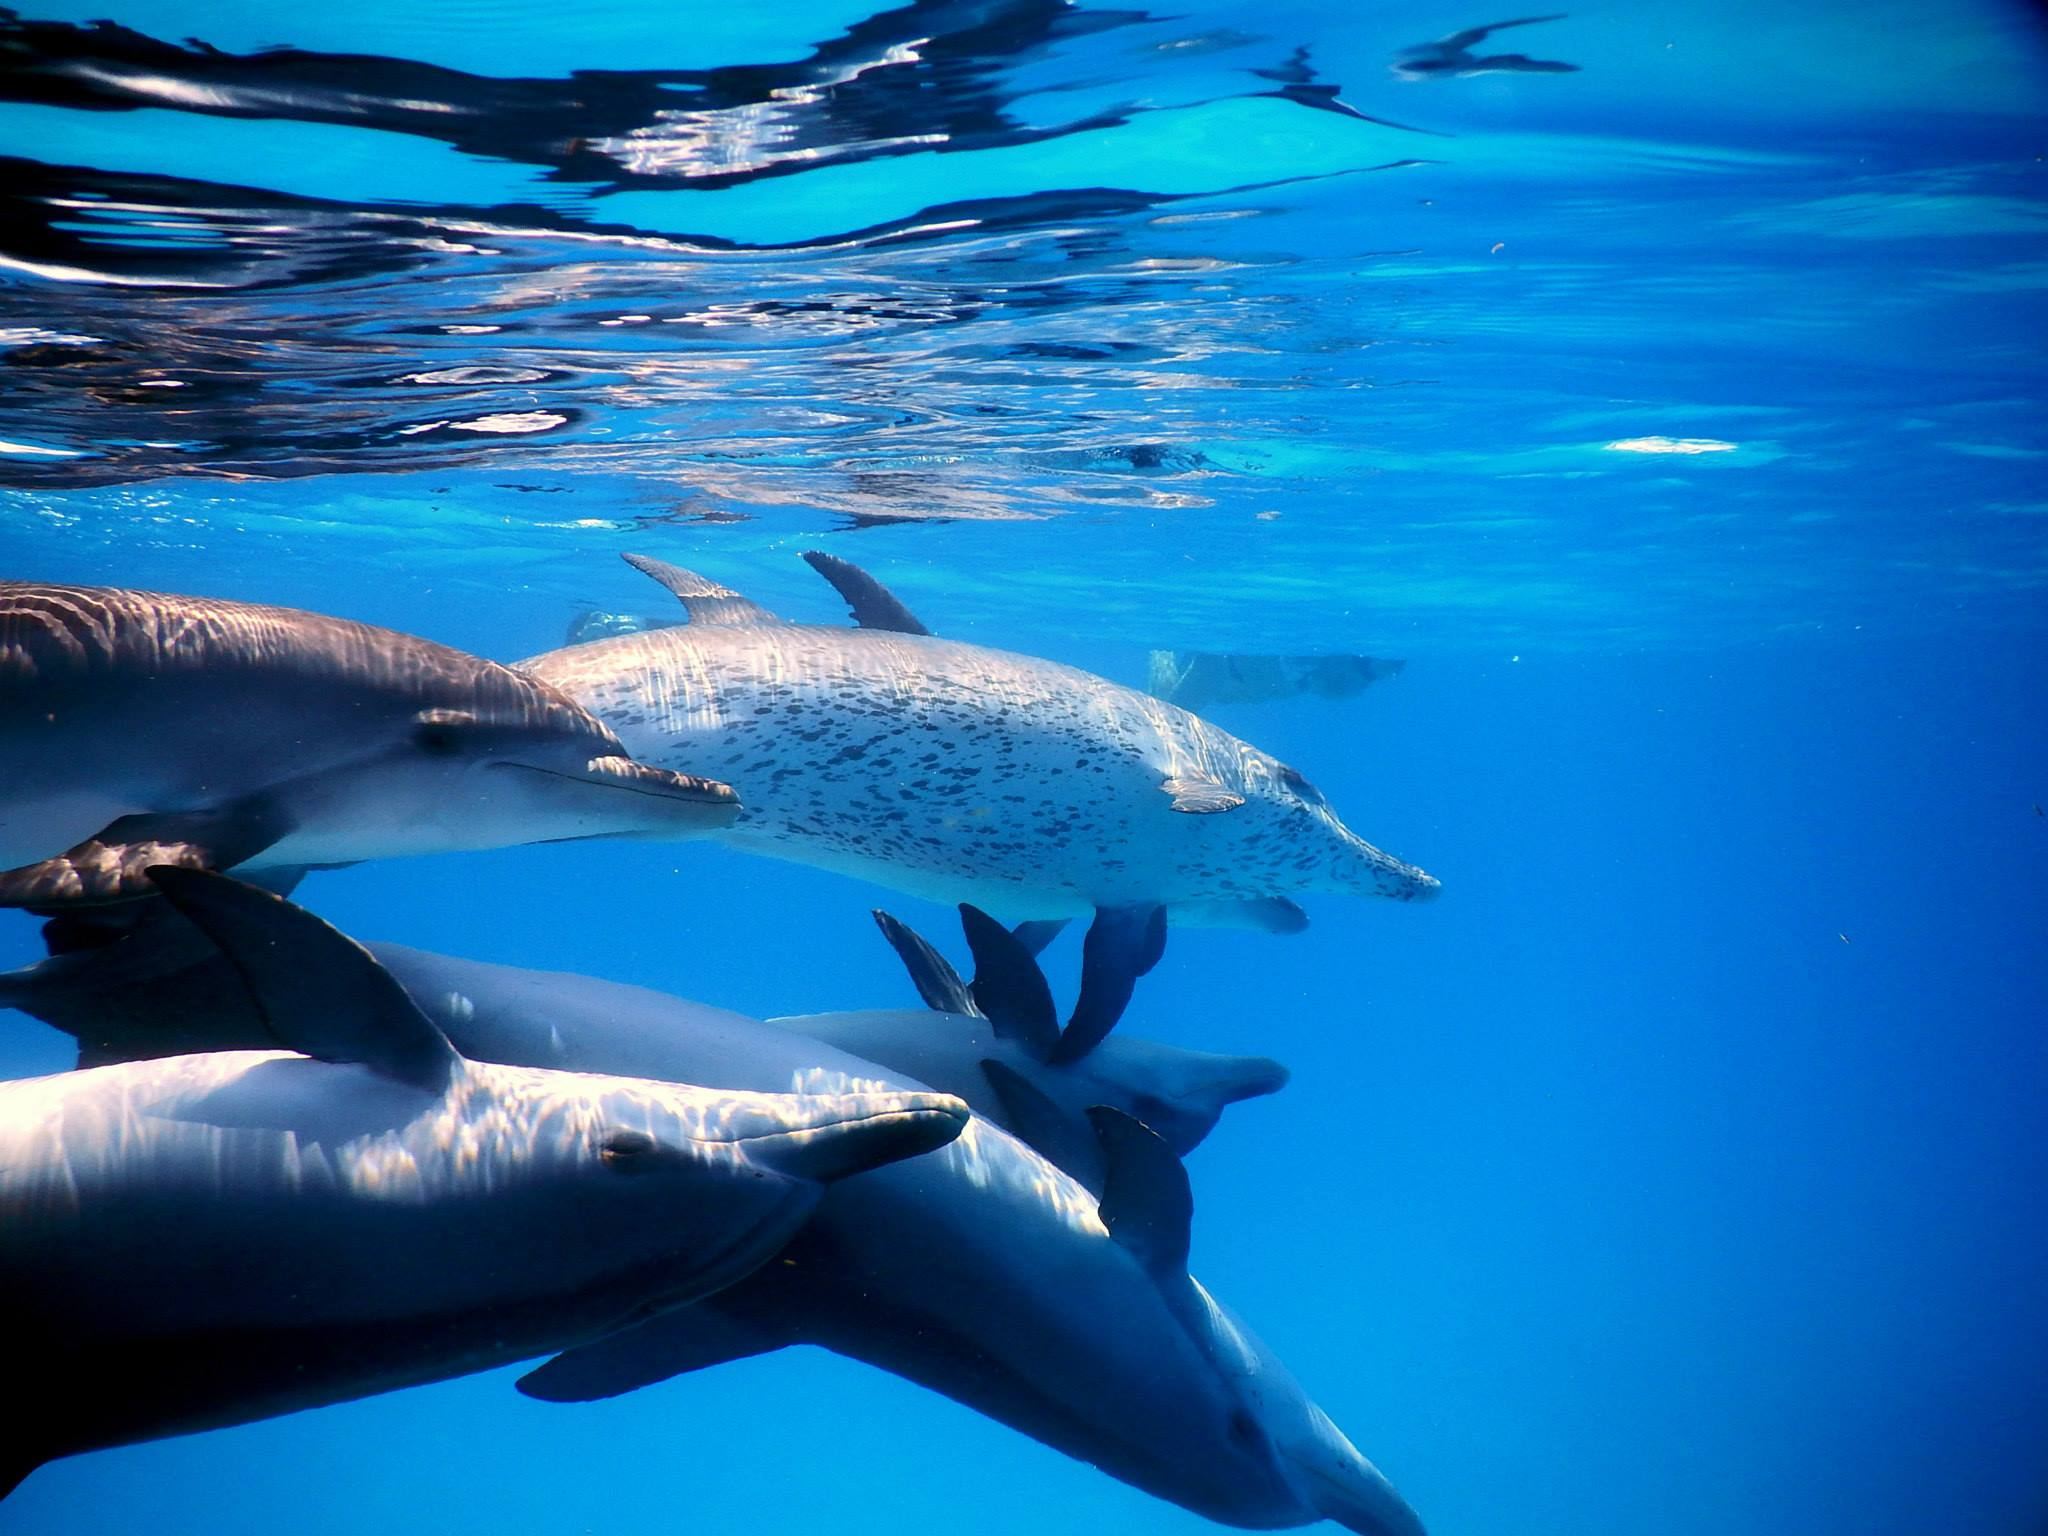 Pretty pictures of dolphins forming a heart love in my heart with each